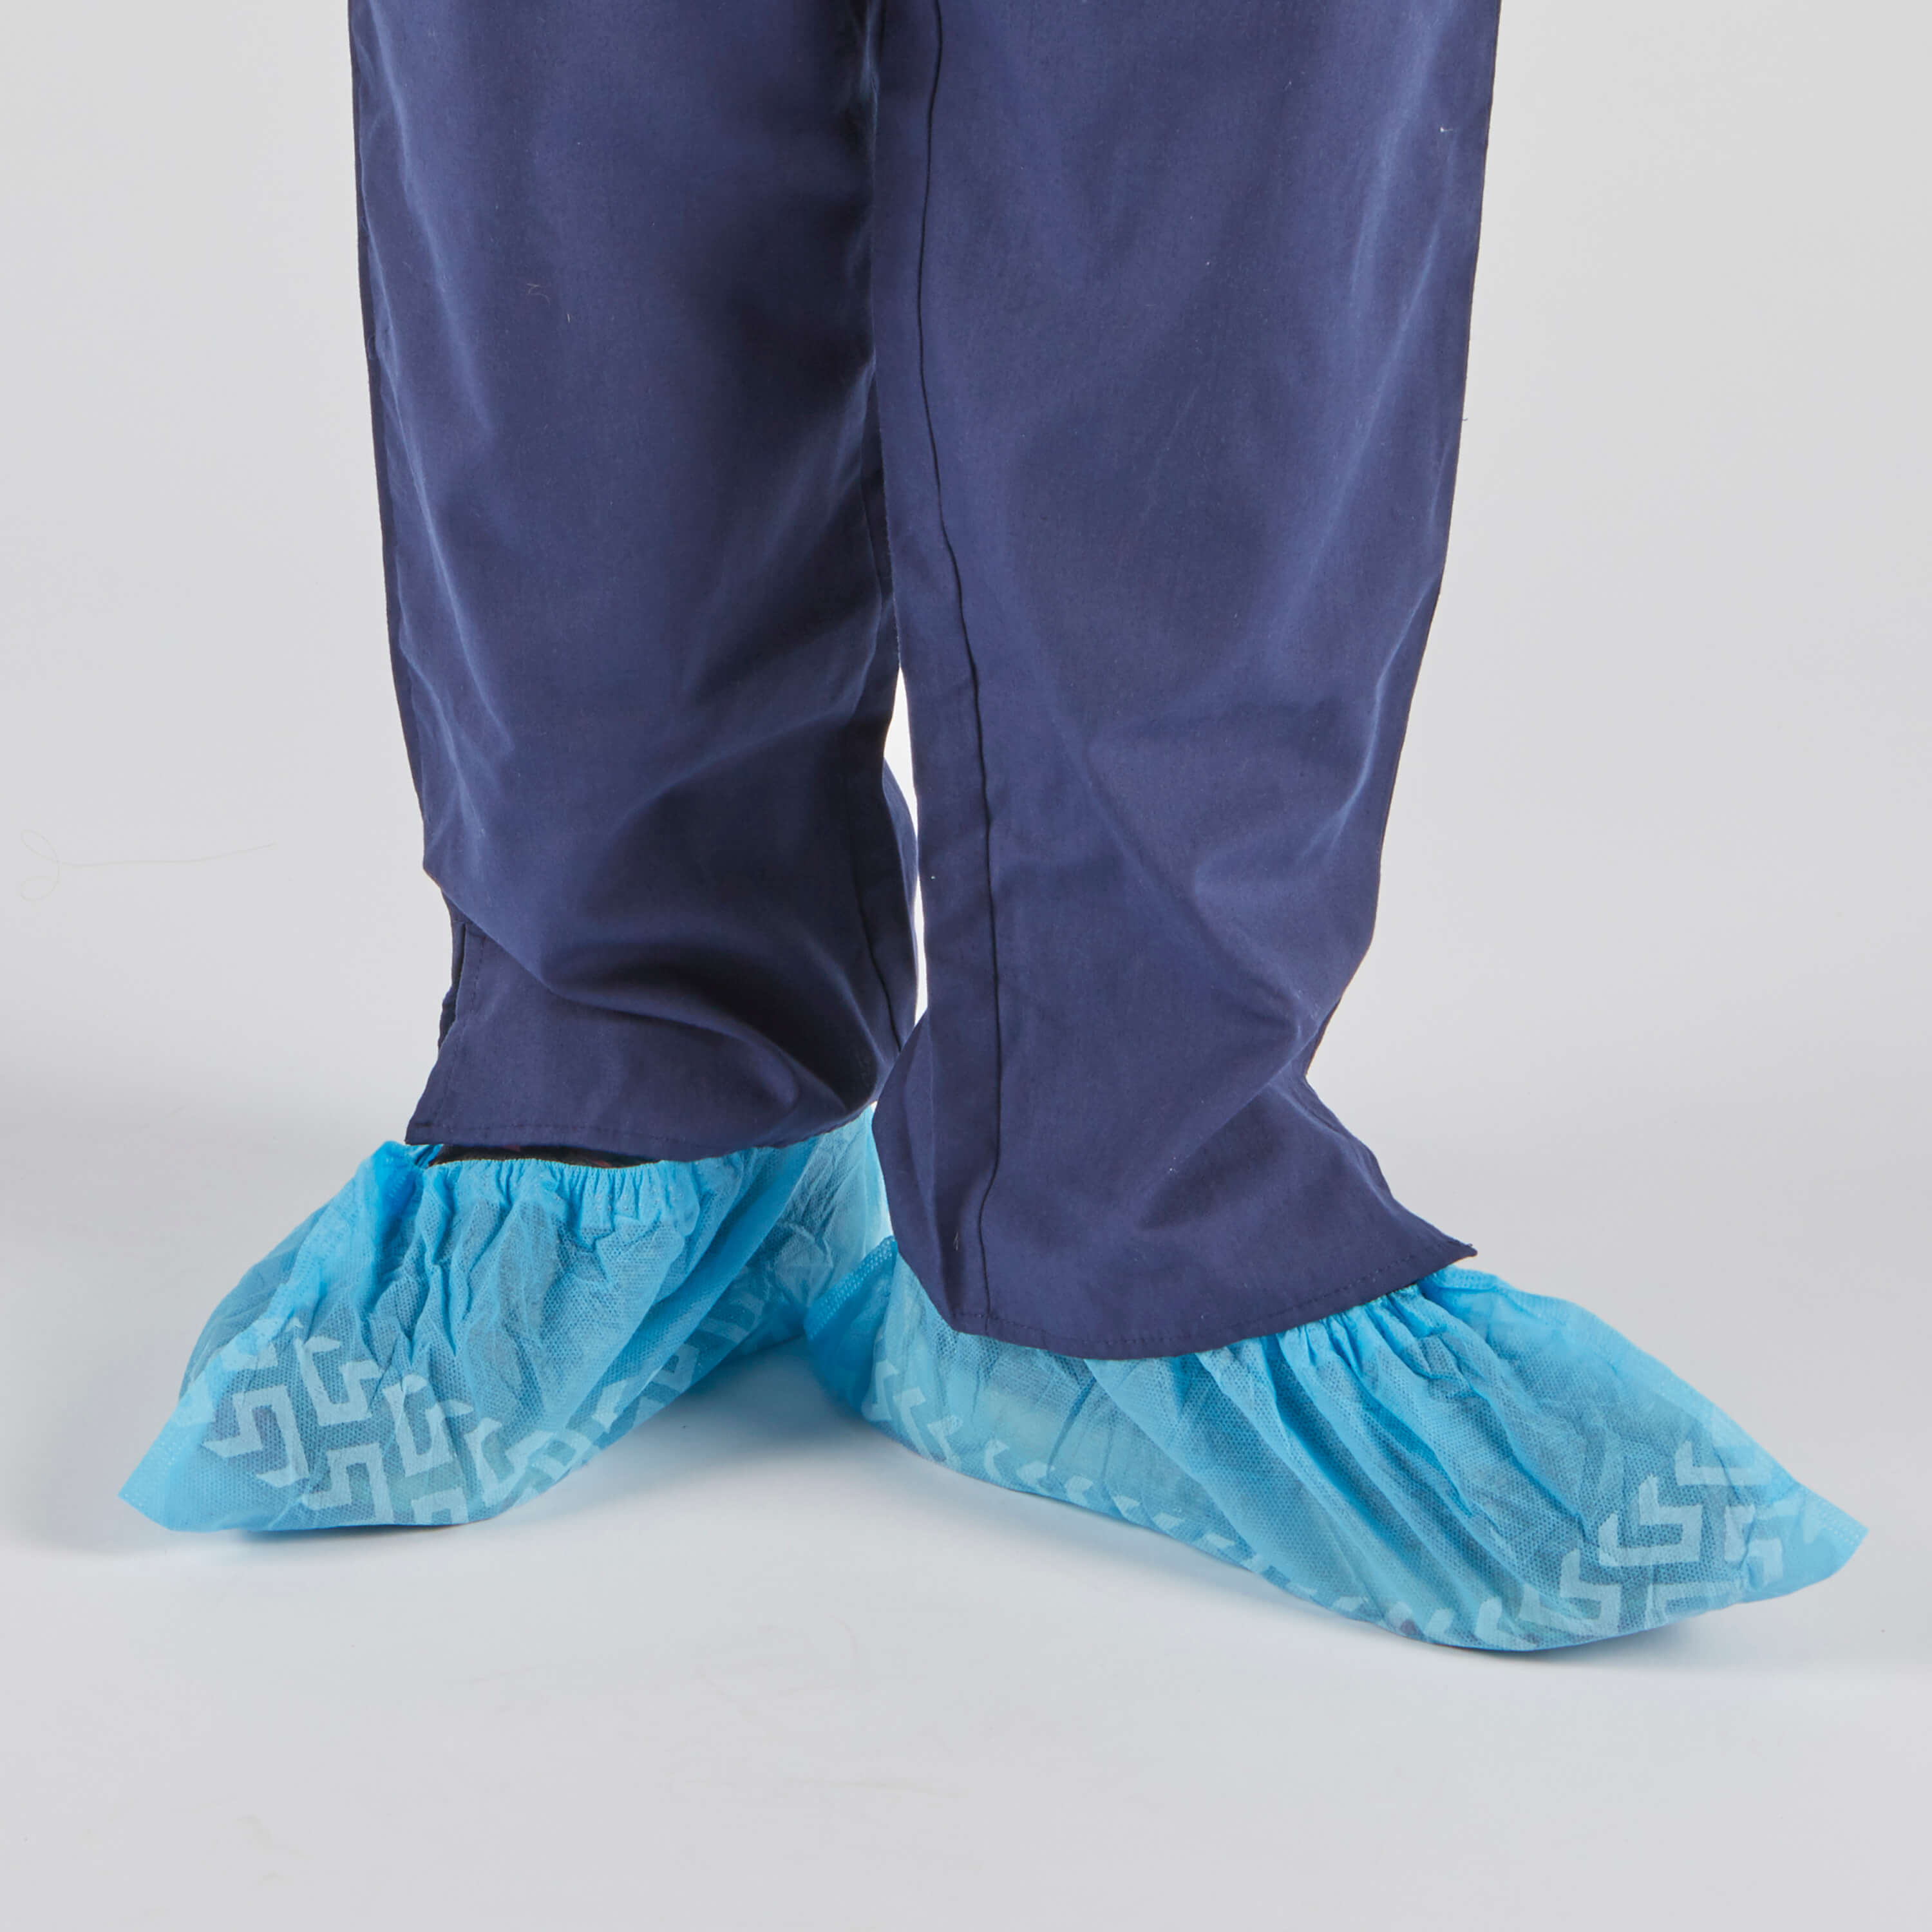 Anti-Skid Shoe Covers (case of 500 pairs) | $0.14 per pair | Free Shipping